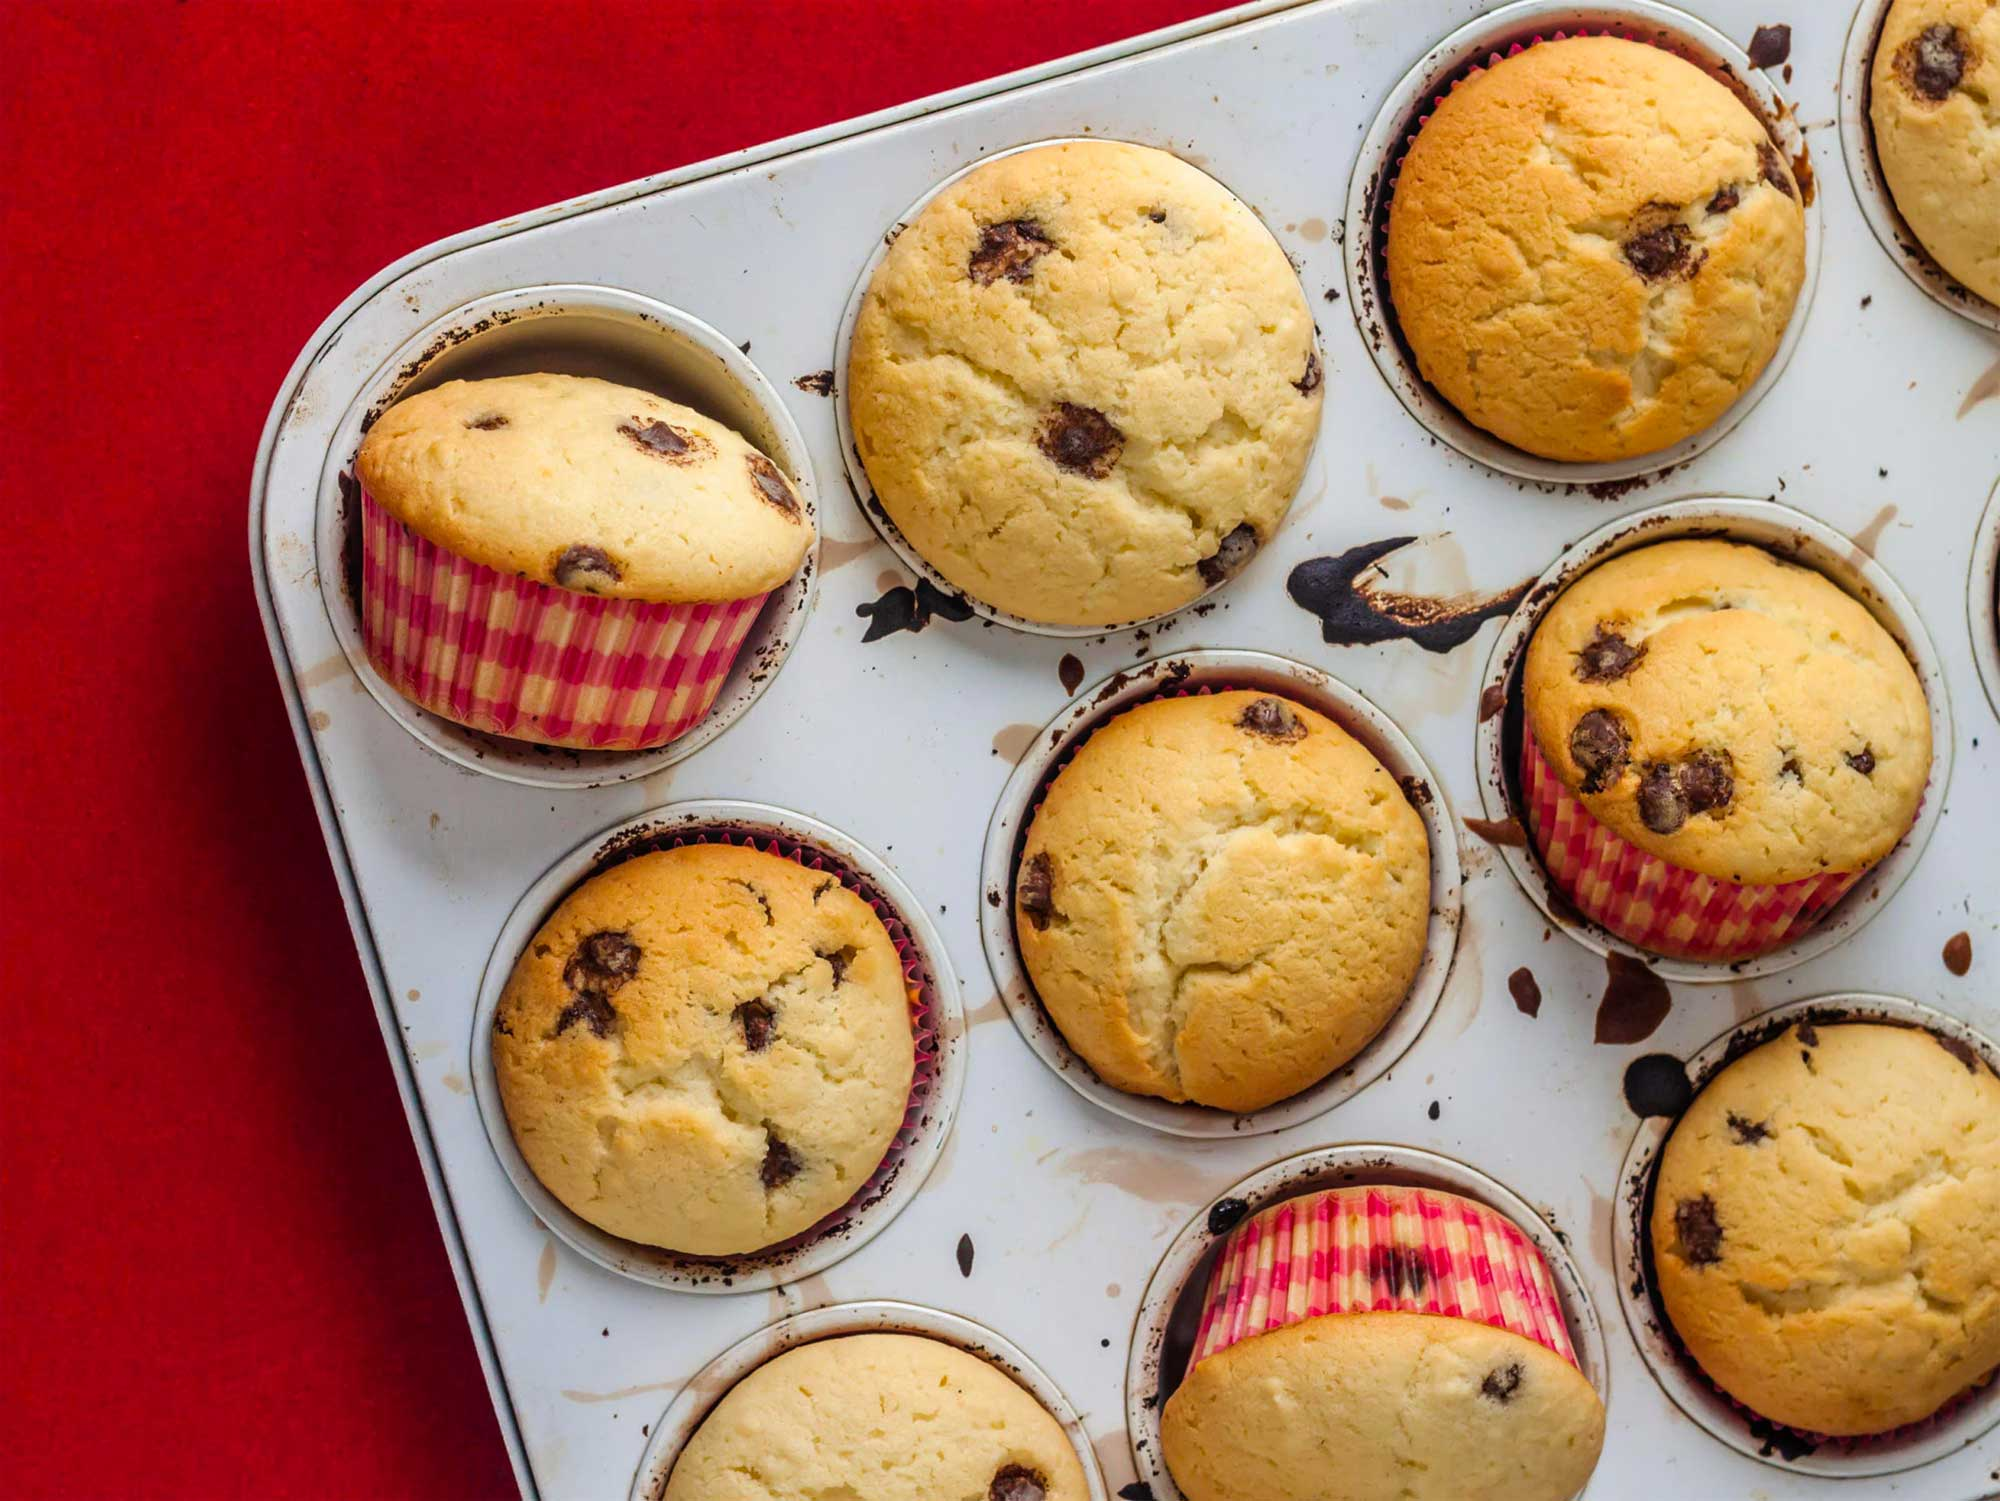 Muffins on a red tablecloth